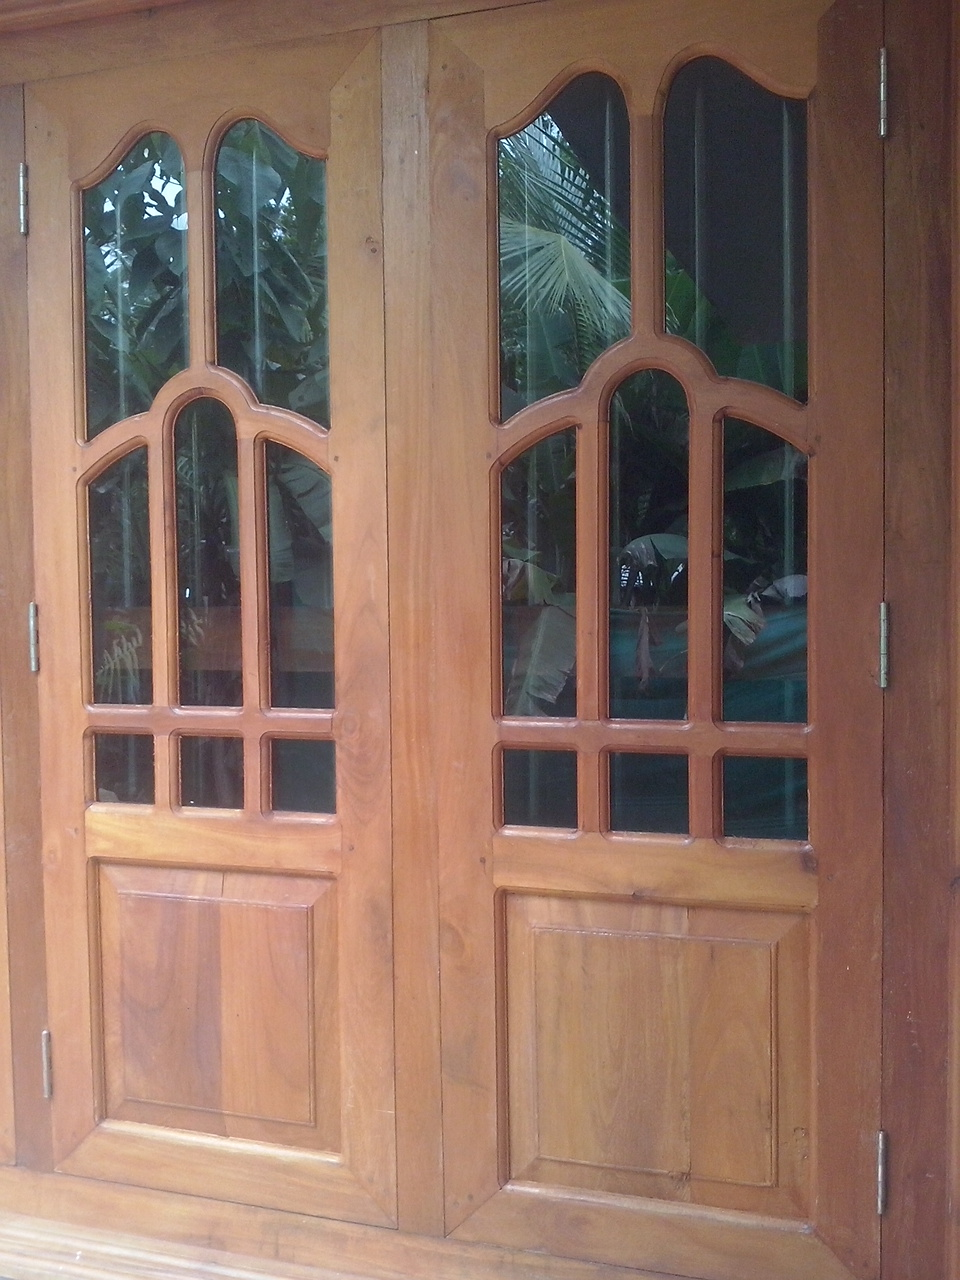 Bavas wood works kerala style wooden window door designs for Window design new style